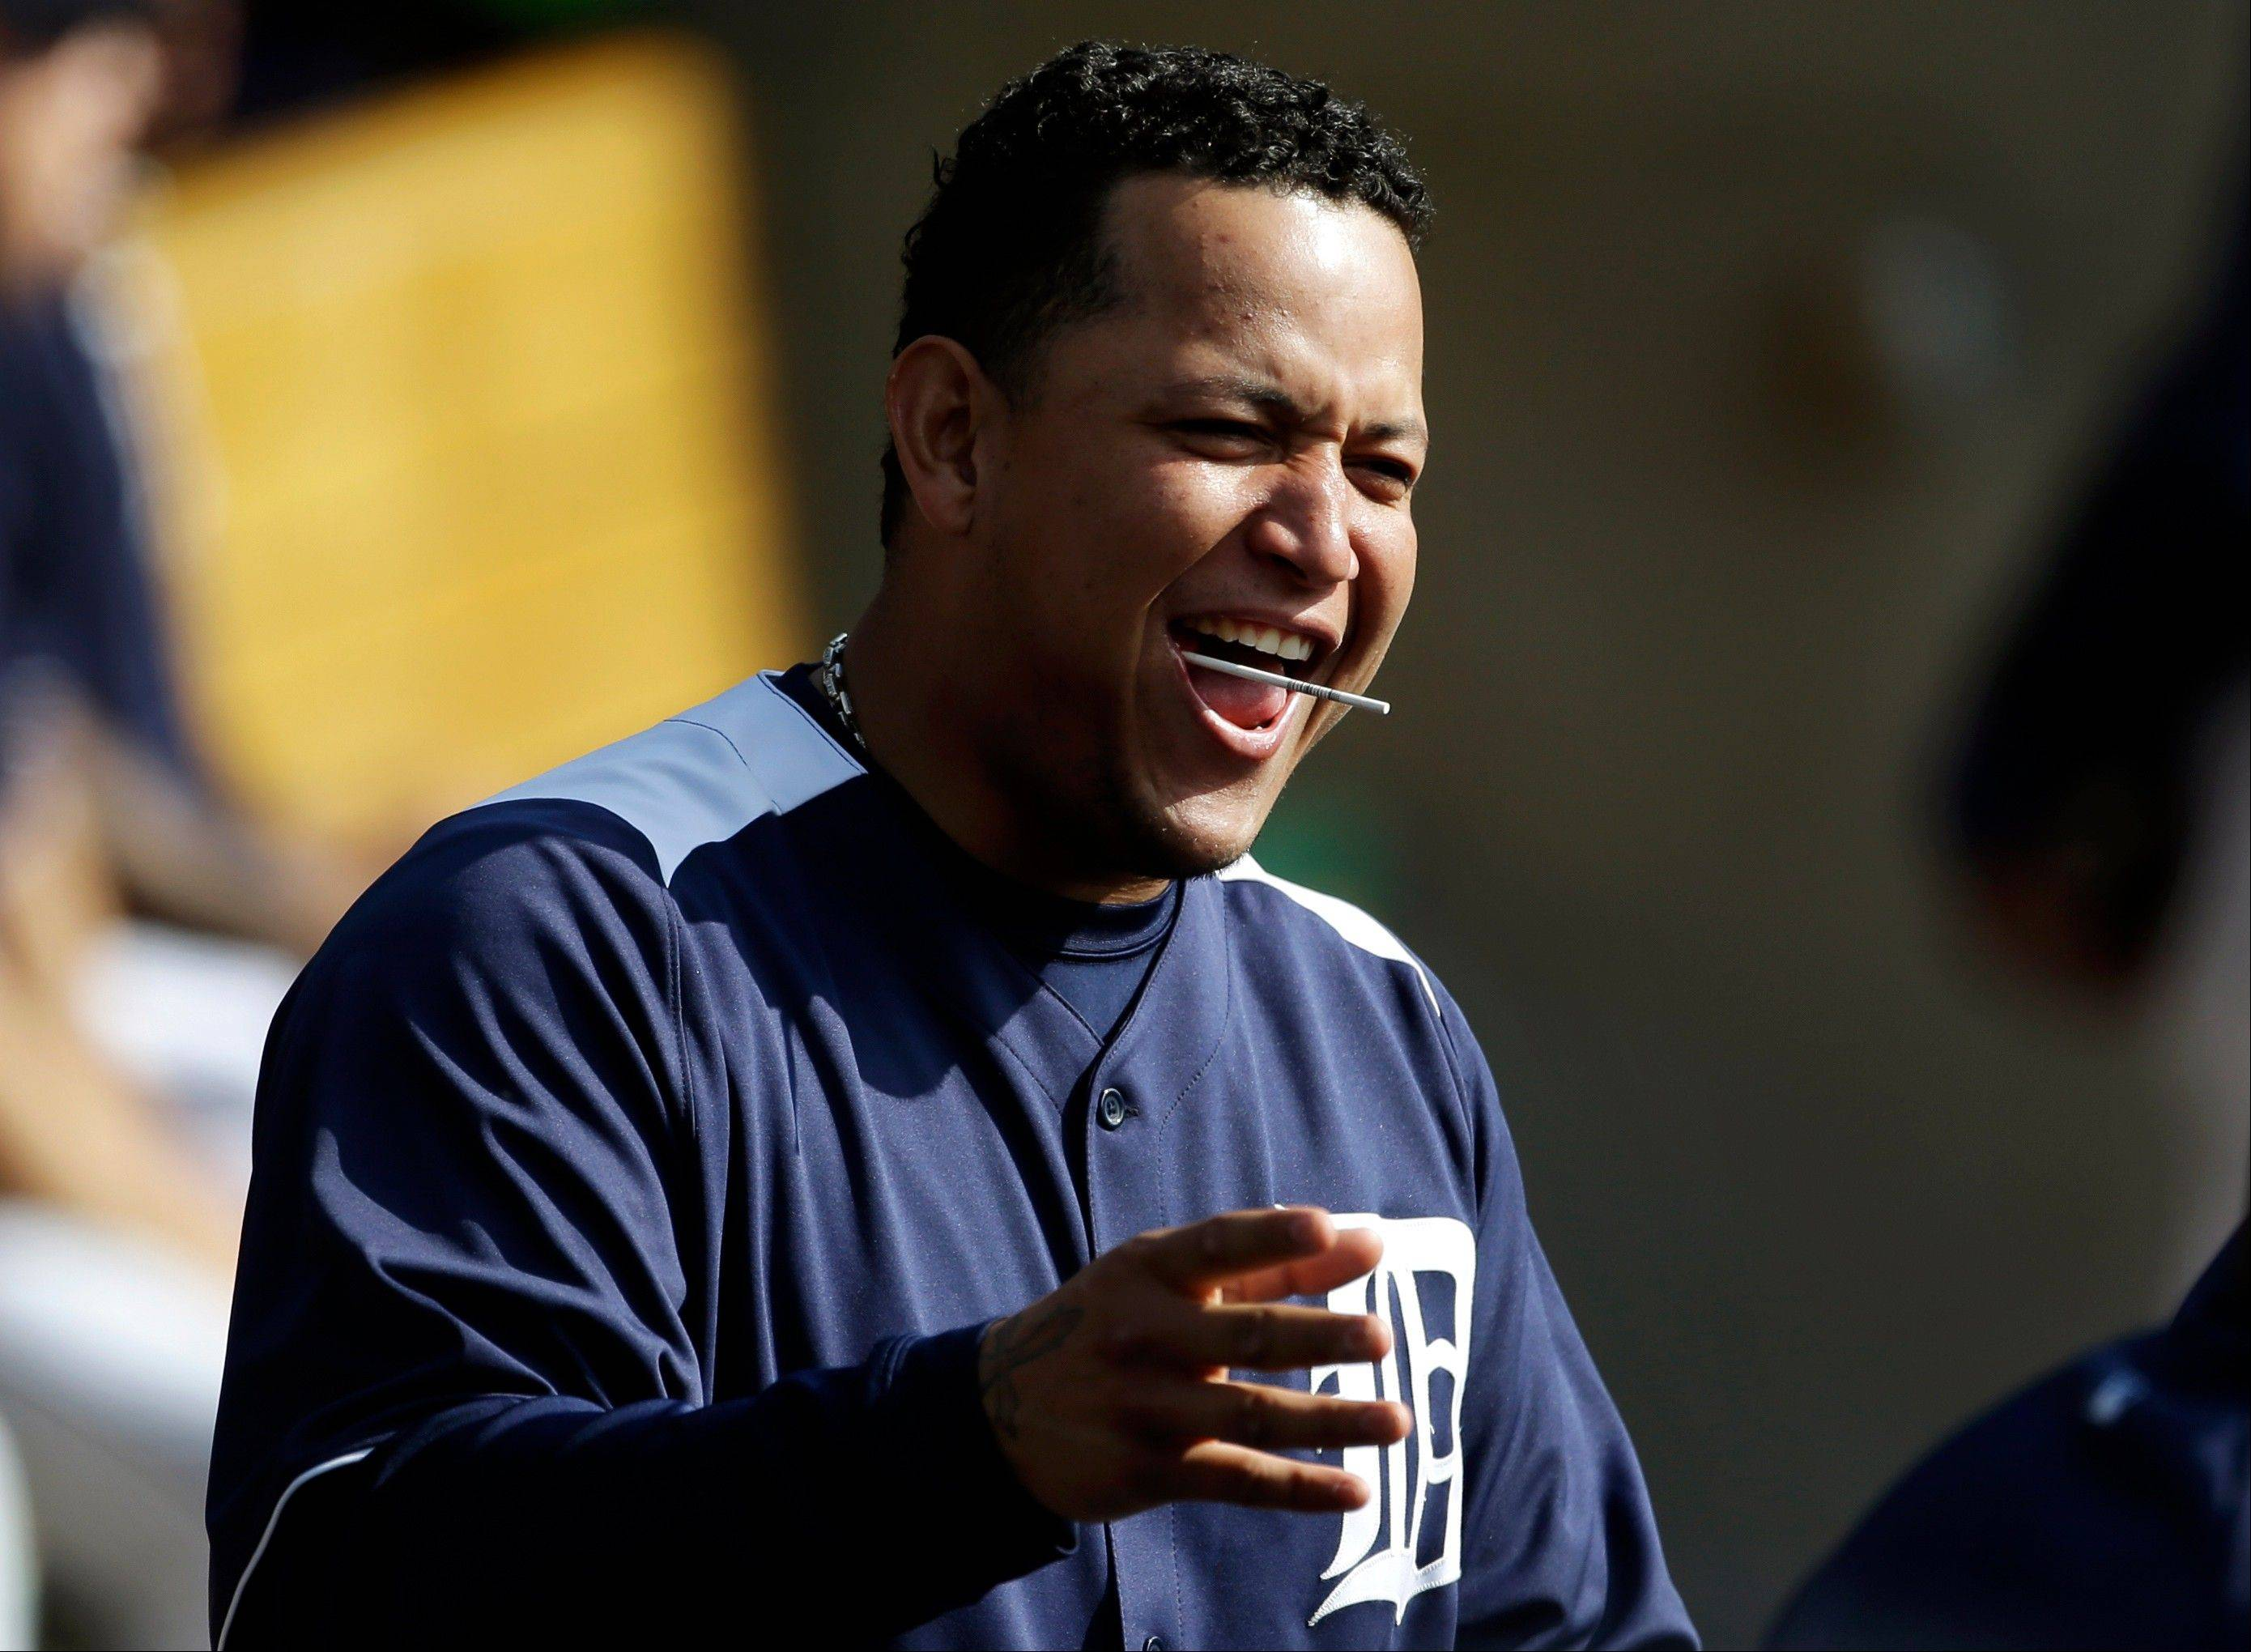 The Detroit Tigers' Miguel Cabrera laughs in the dugout during a workout Monday at Comerica Park in Detroit. Cabrera is one of 9 Venezuelans playing for the Tigers and Giants in the World Series.